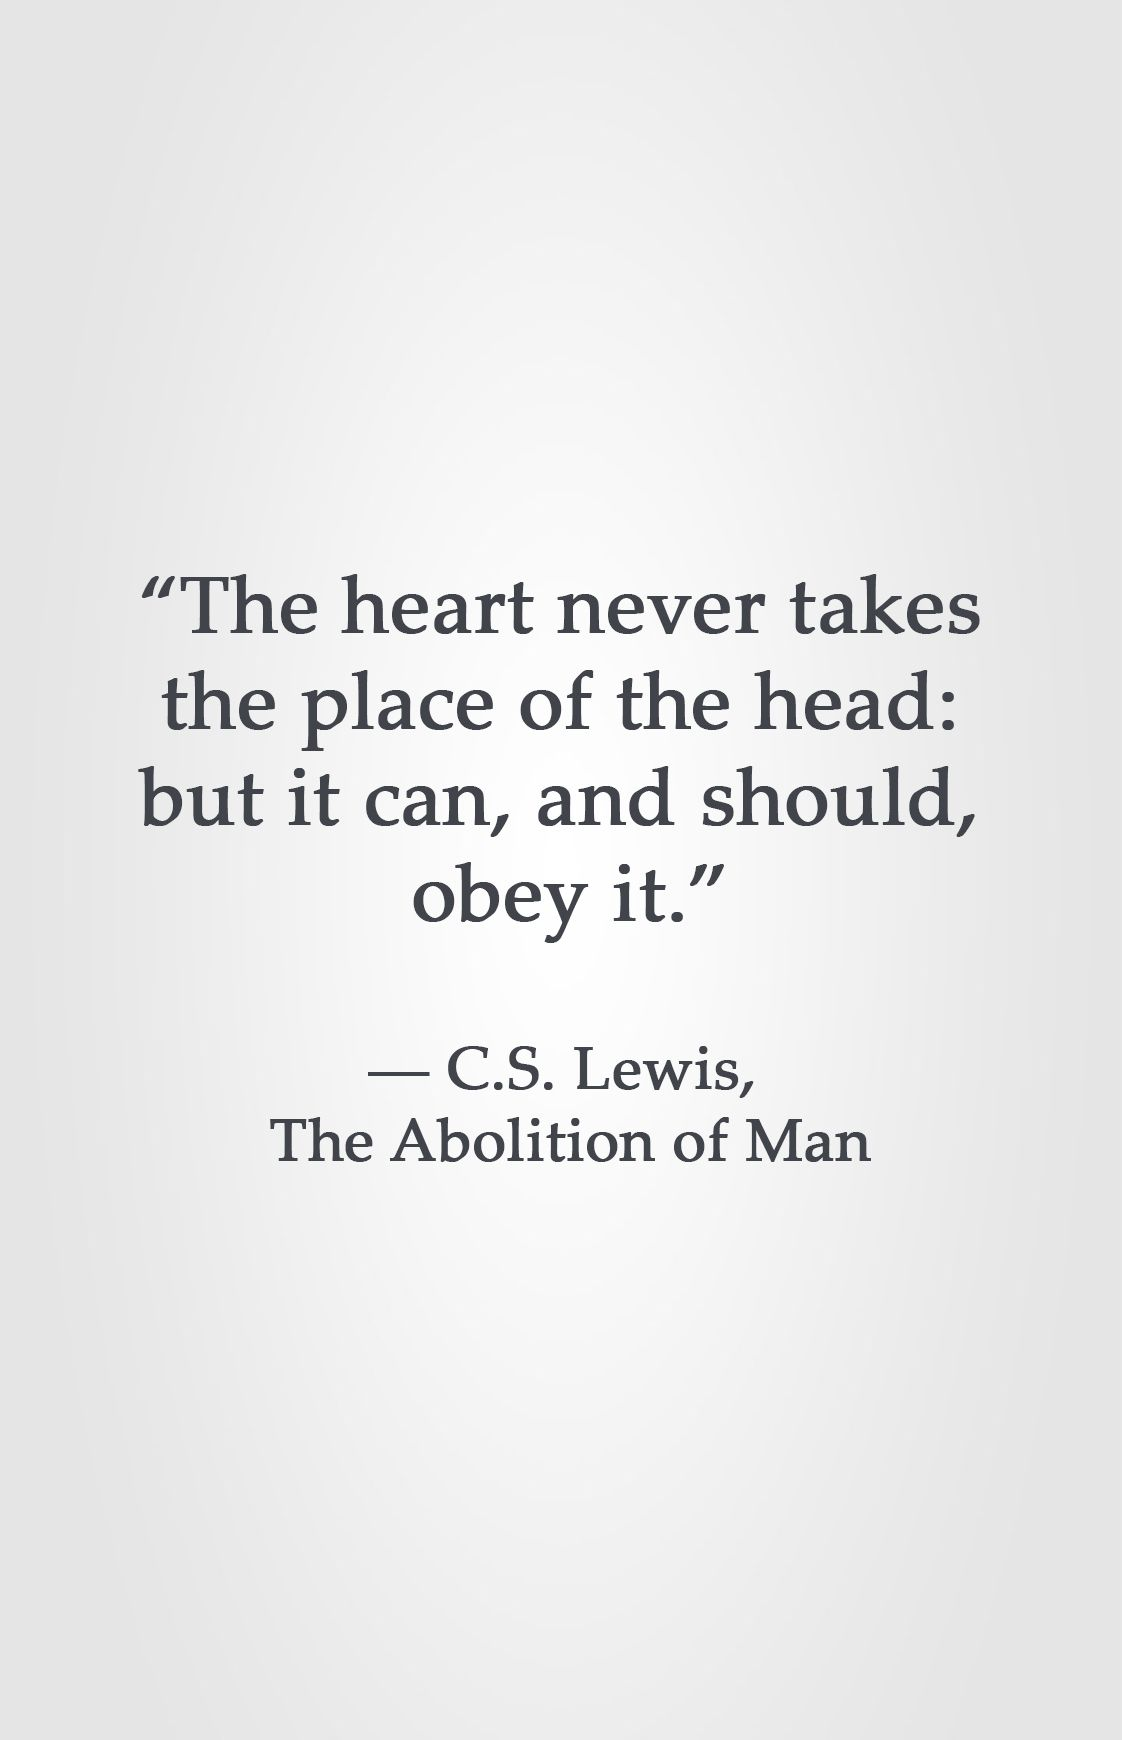 """The heart never takes the place of the head: but it can, and should, obey it."" ― C.S. Lewis, The Abolition of Man"